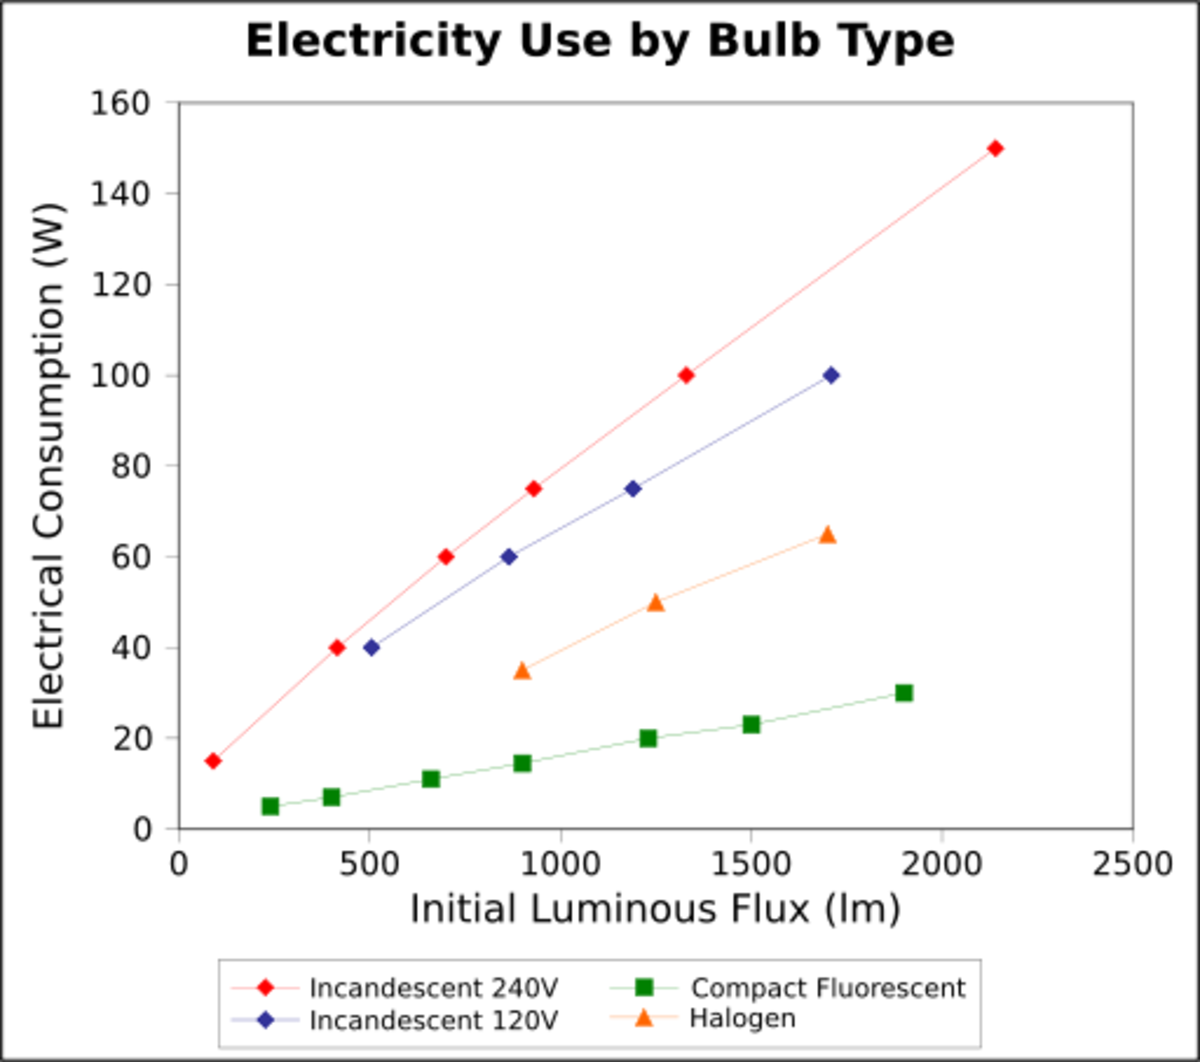 This chart illustrates the cost of running compact fluorescent lights vs incandescent (240V, 120V) and halogen.